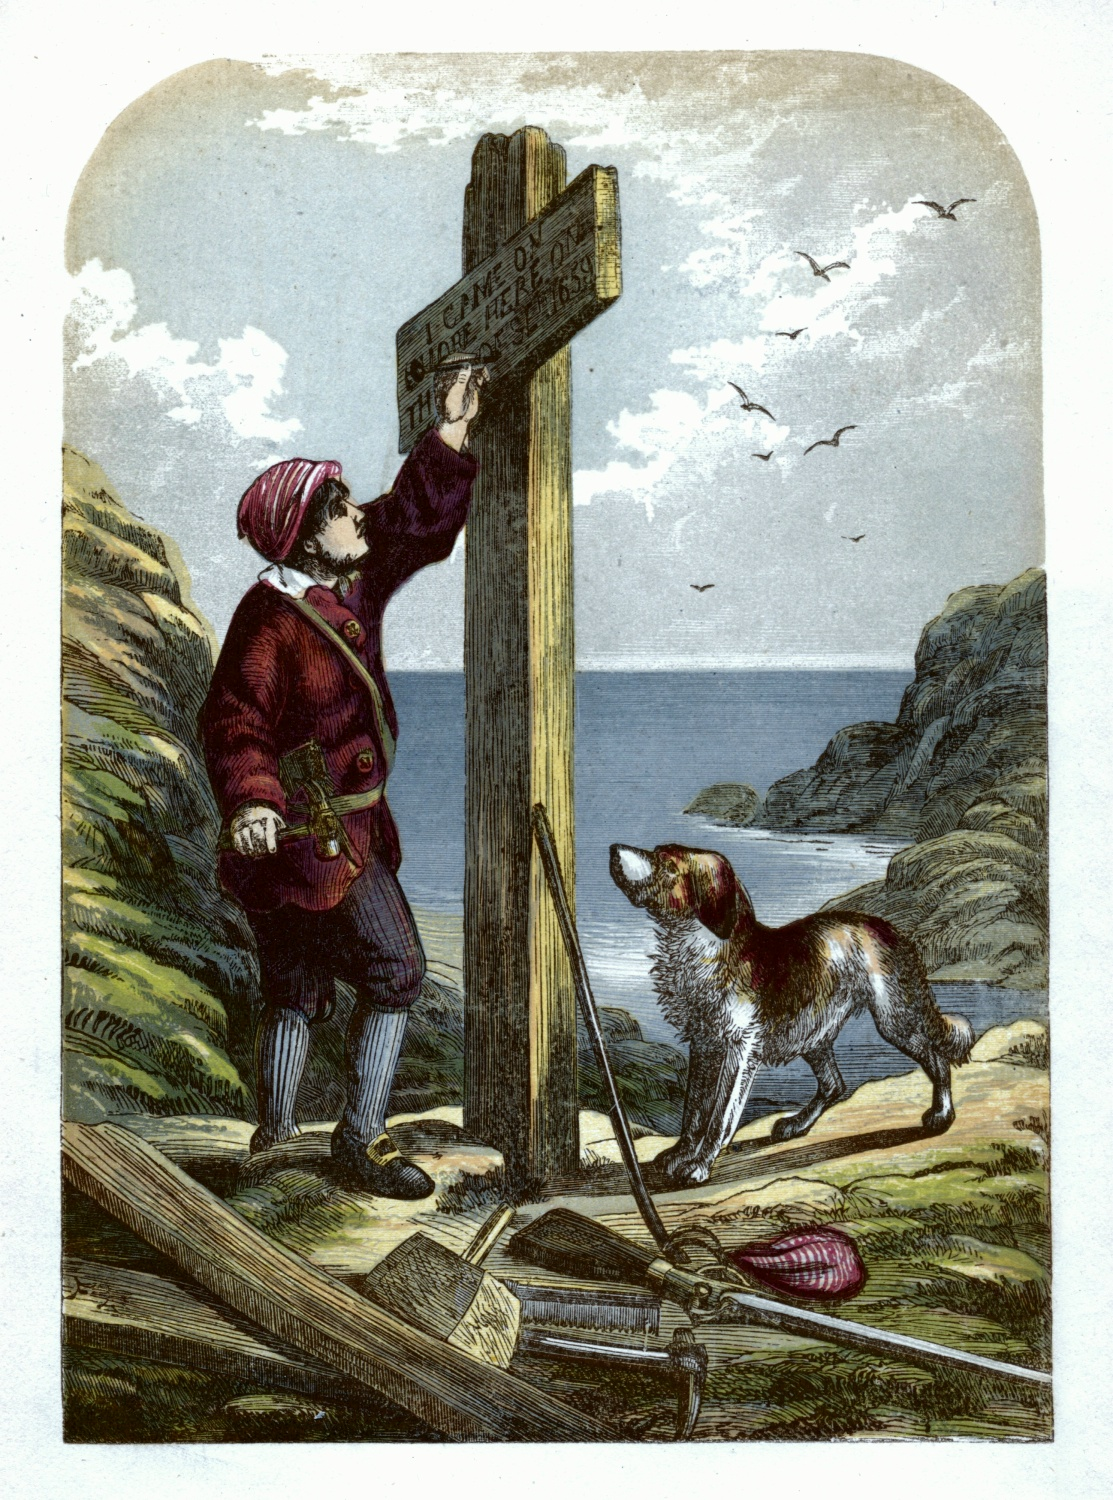 Robinson Crusoe erects a post on the shore